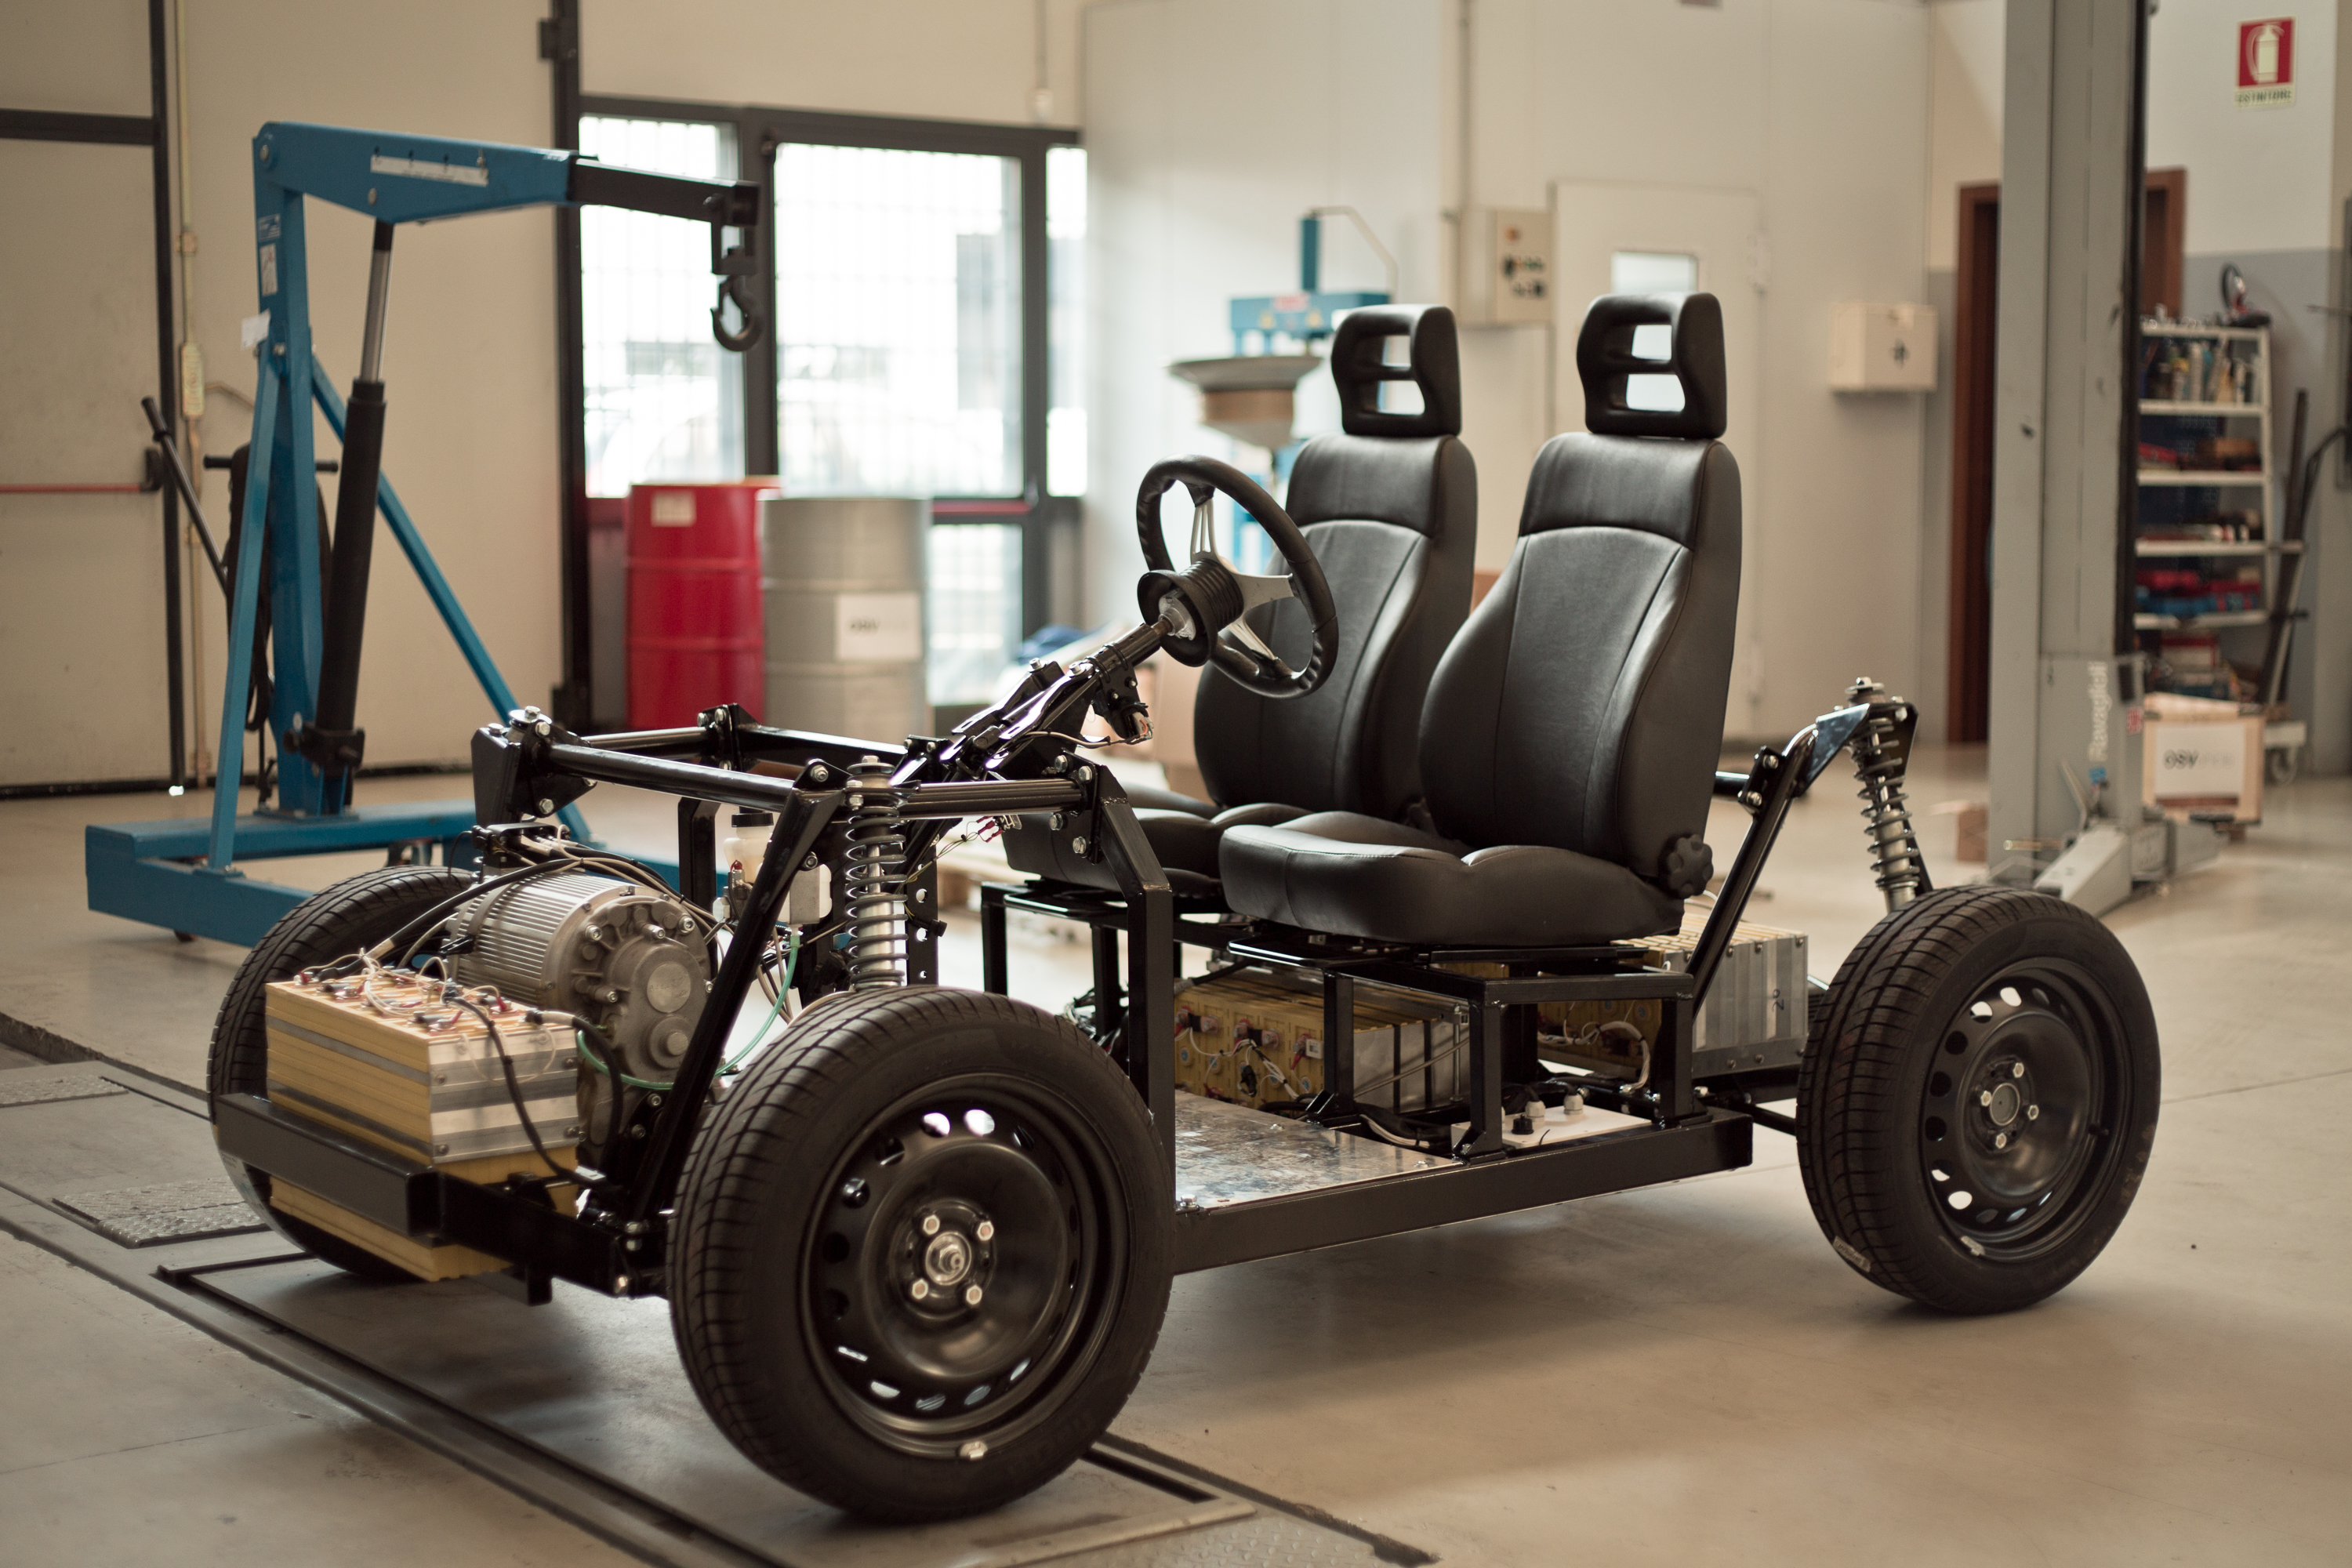 OSVehicle's Tabby EVO: Build This Open-Source EV in an Hour